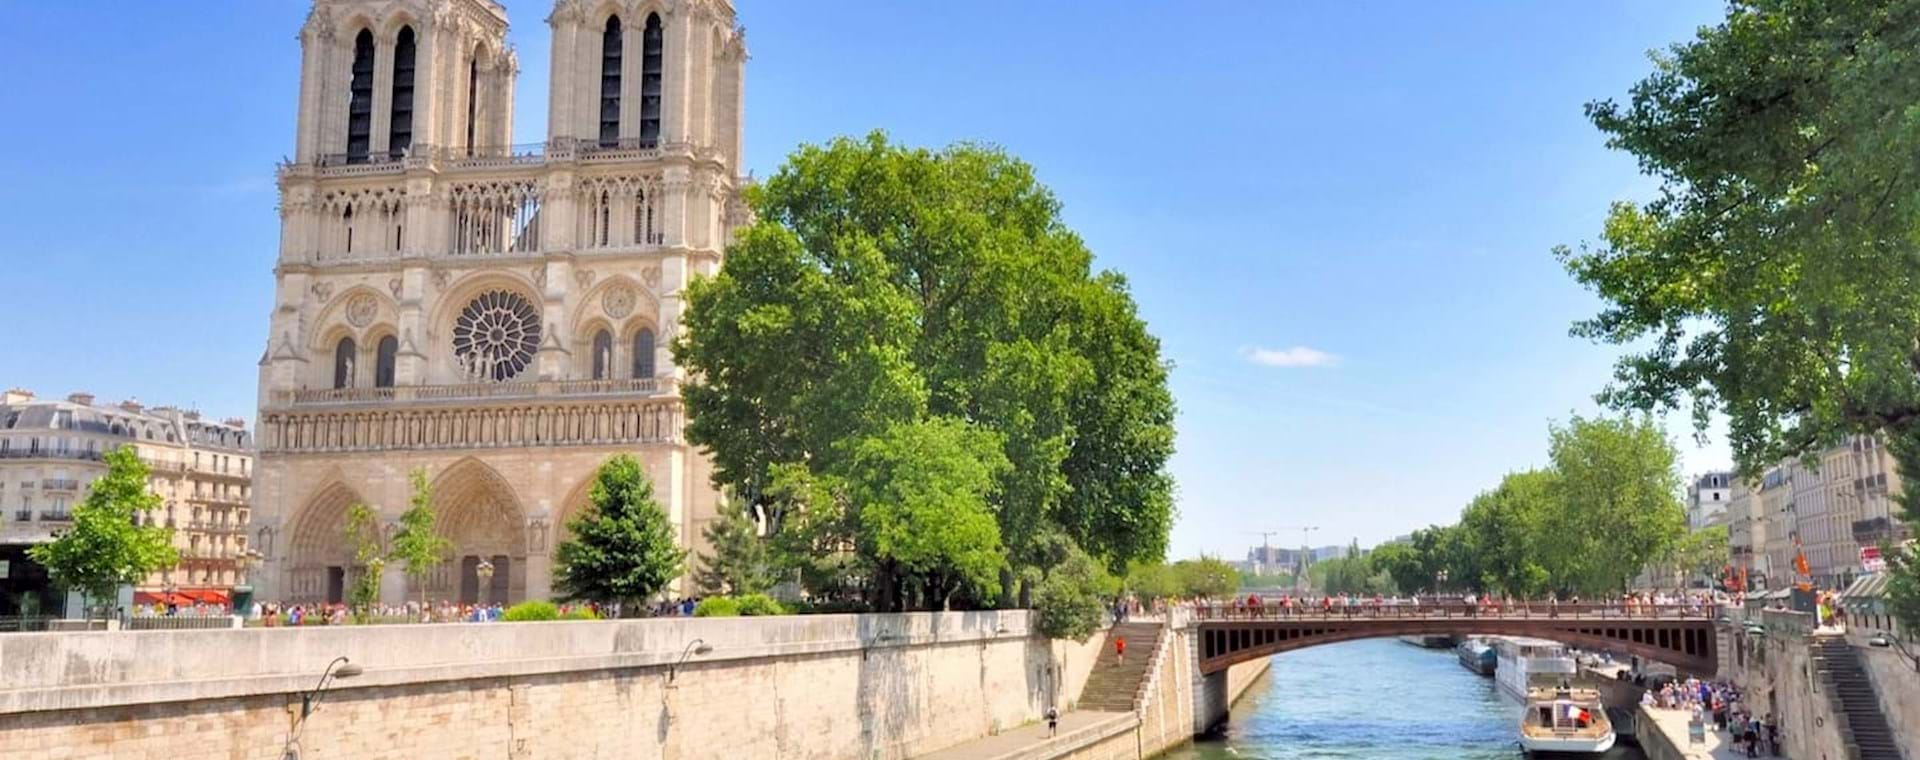 Perfect Day in Paris Tour: Louvre, Notre Dame and Cruise Down the Seine